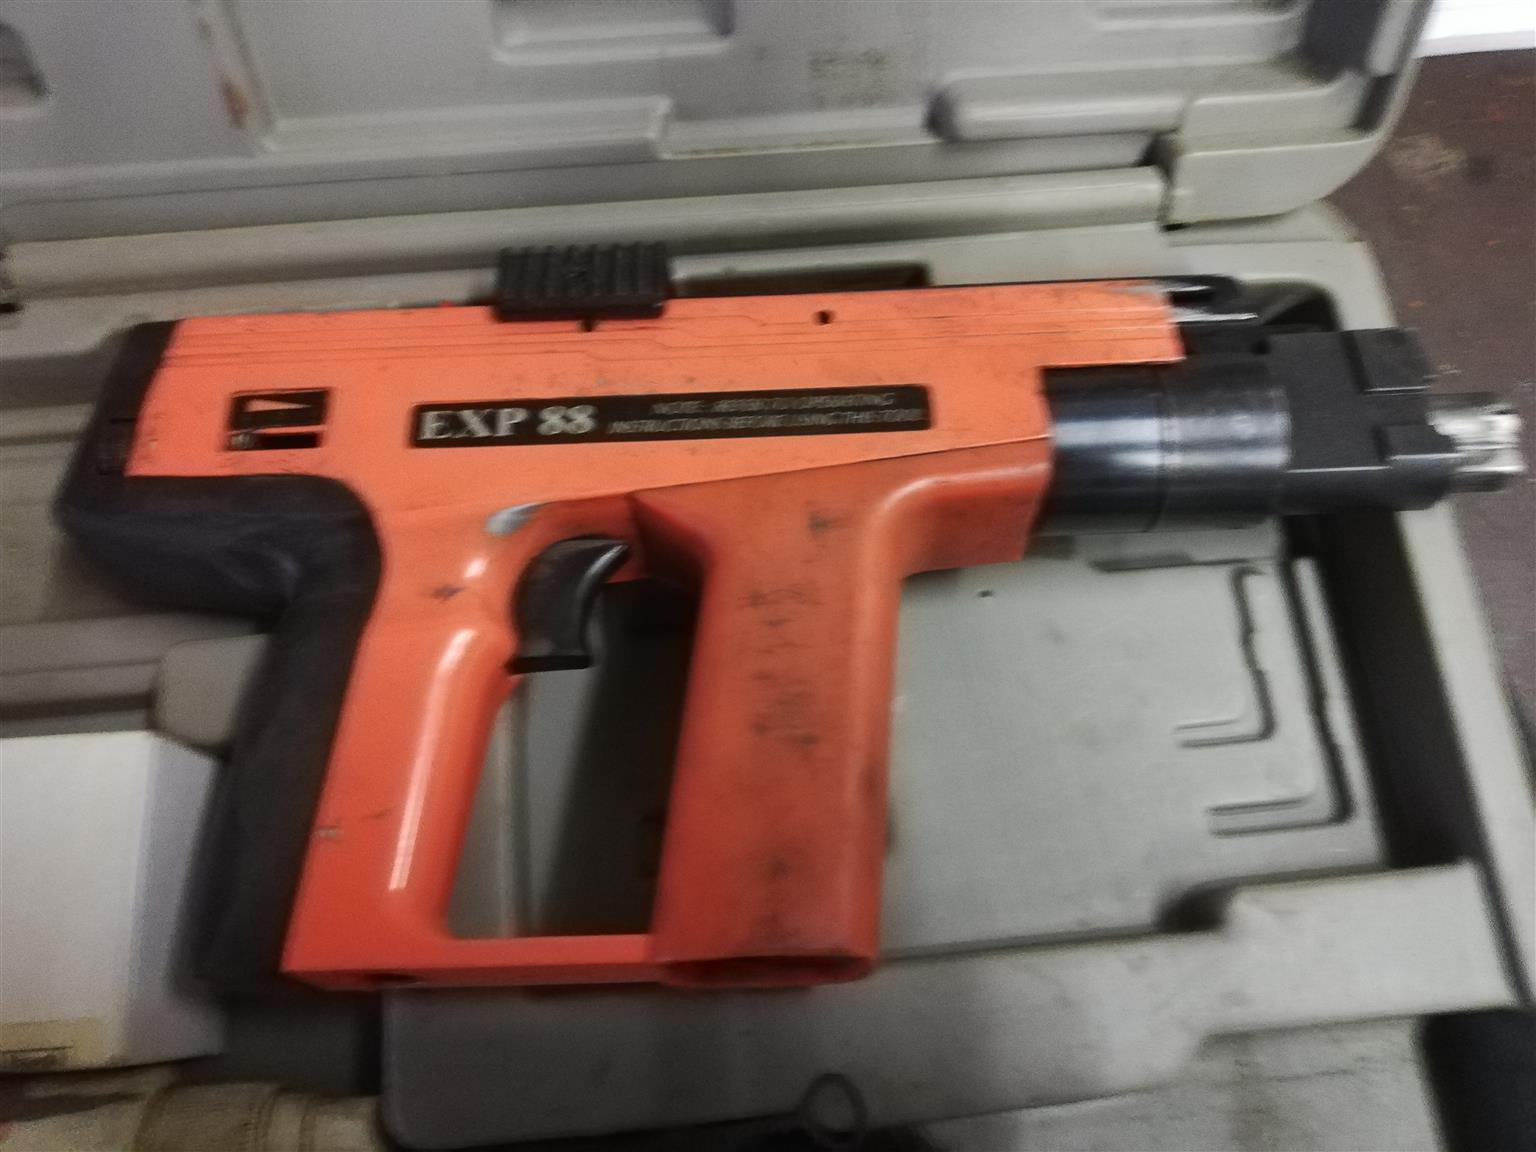 Ficher EXP 88 power actuated nail gun